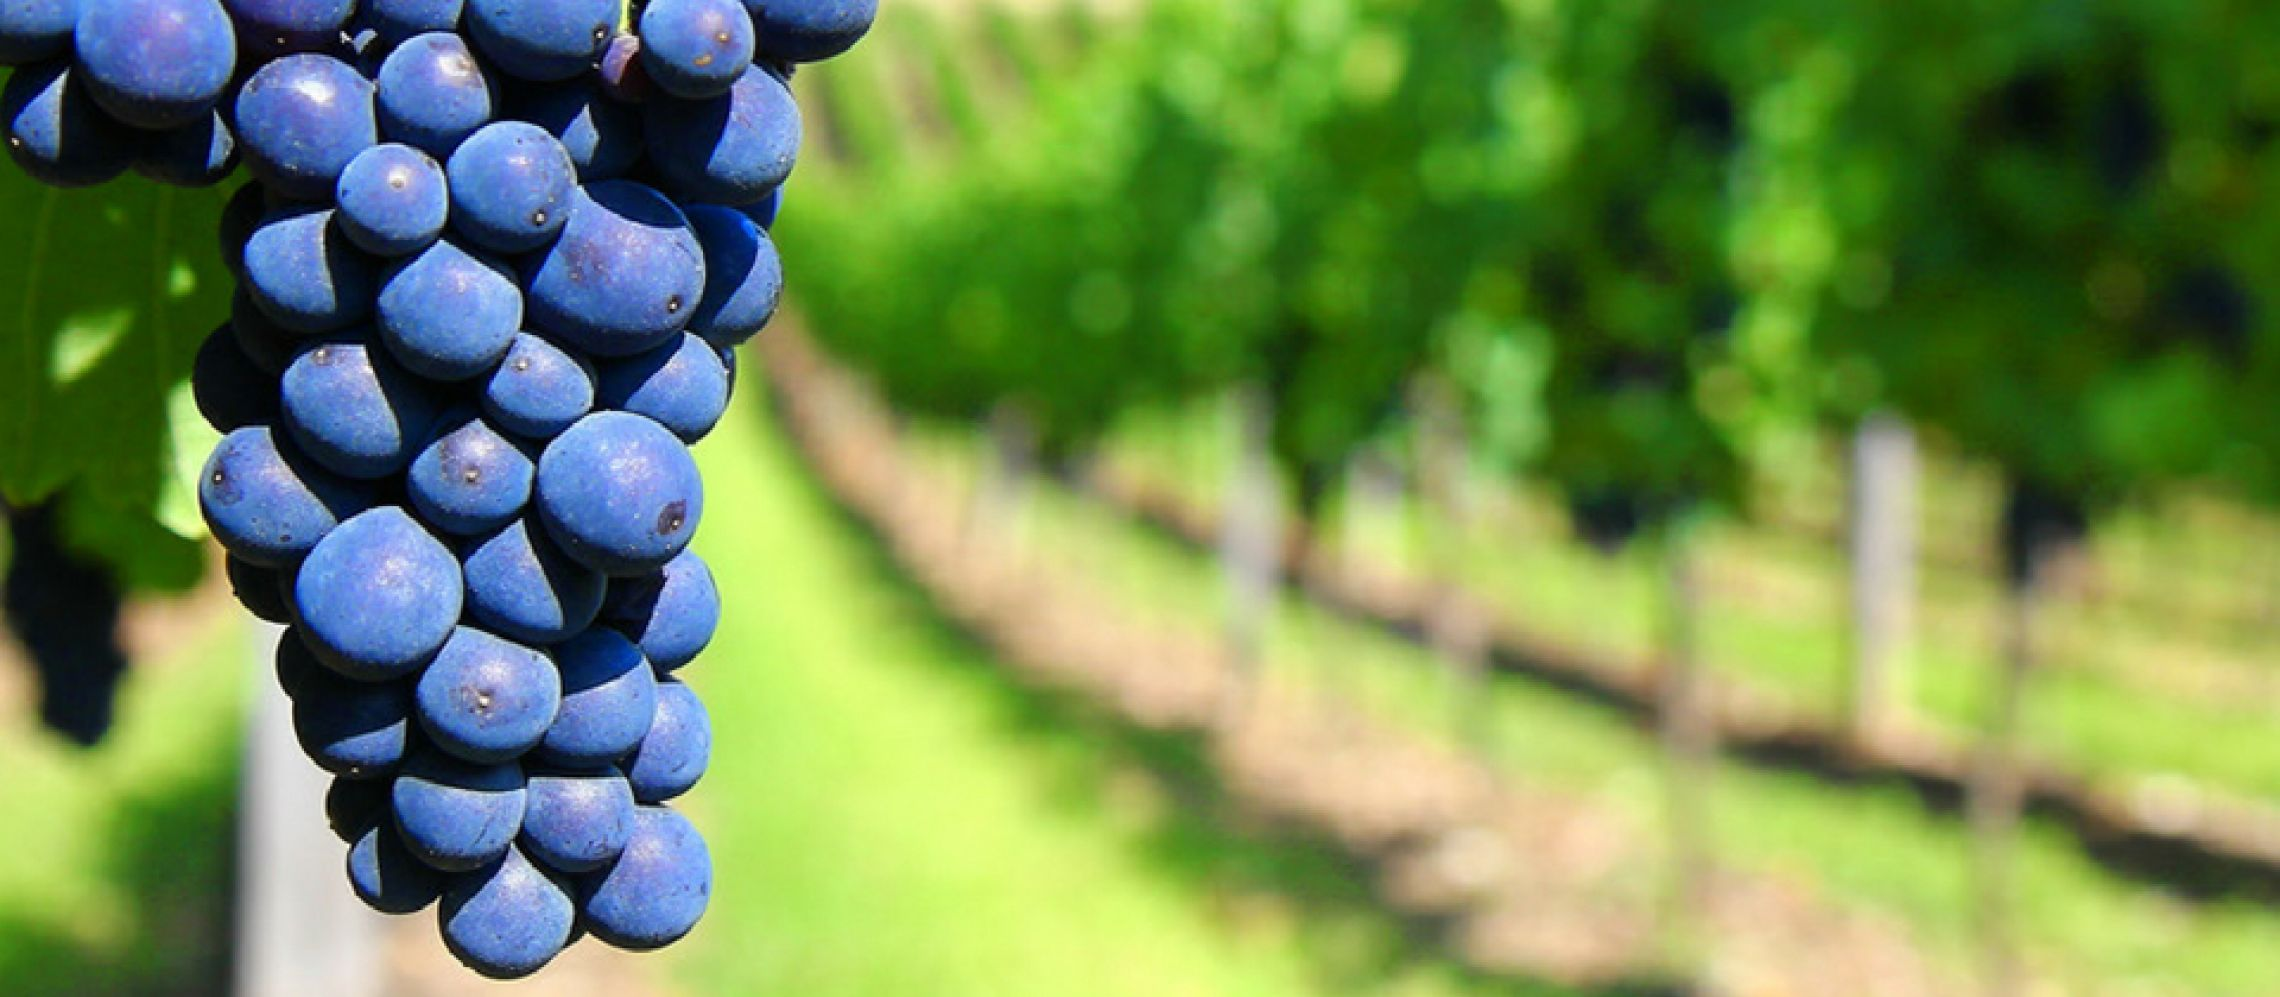 Photo for: Direct Wines Production - A Global Wine Trader